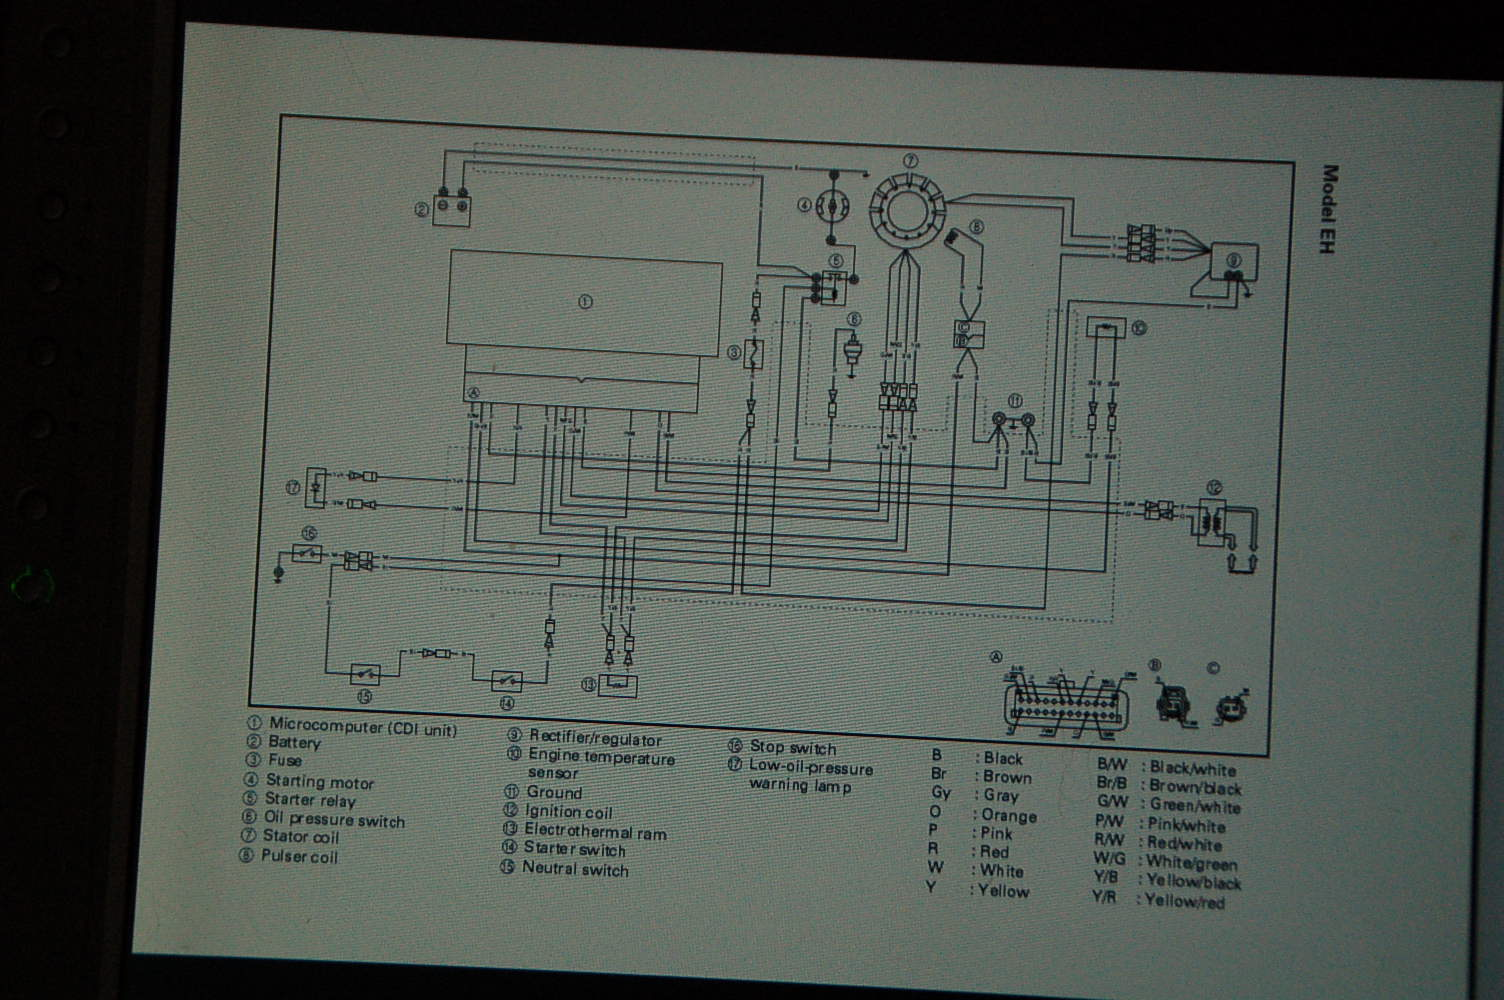 wiring up yamaha 30 boat design net yamaha ttr 225 wiring diagram at honlapkeszites.co